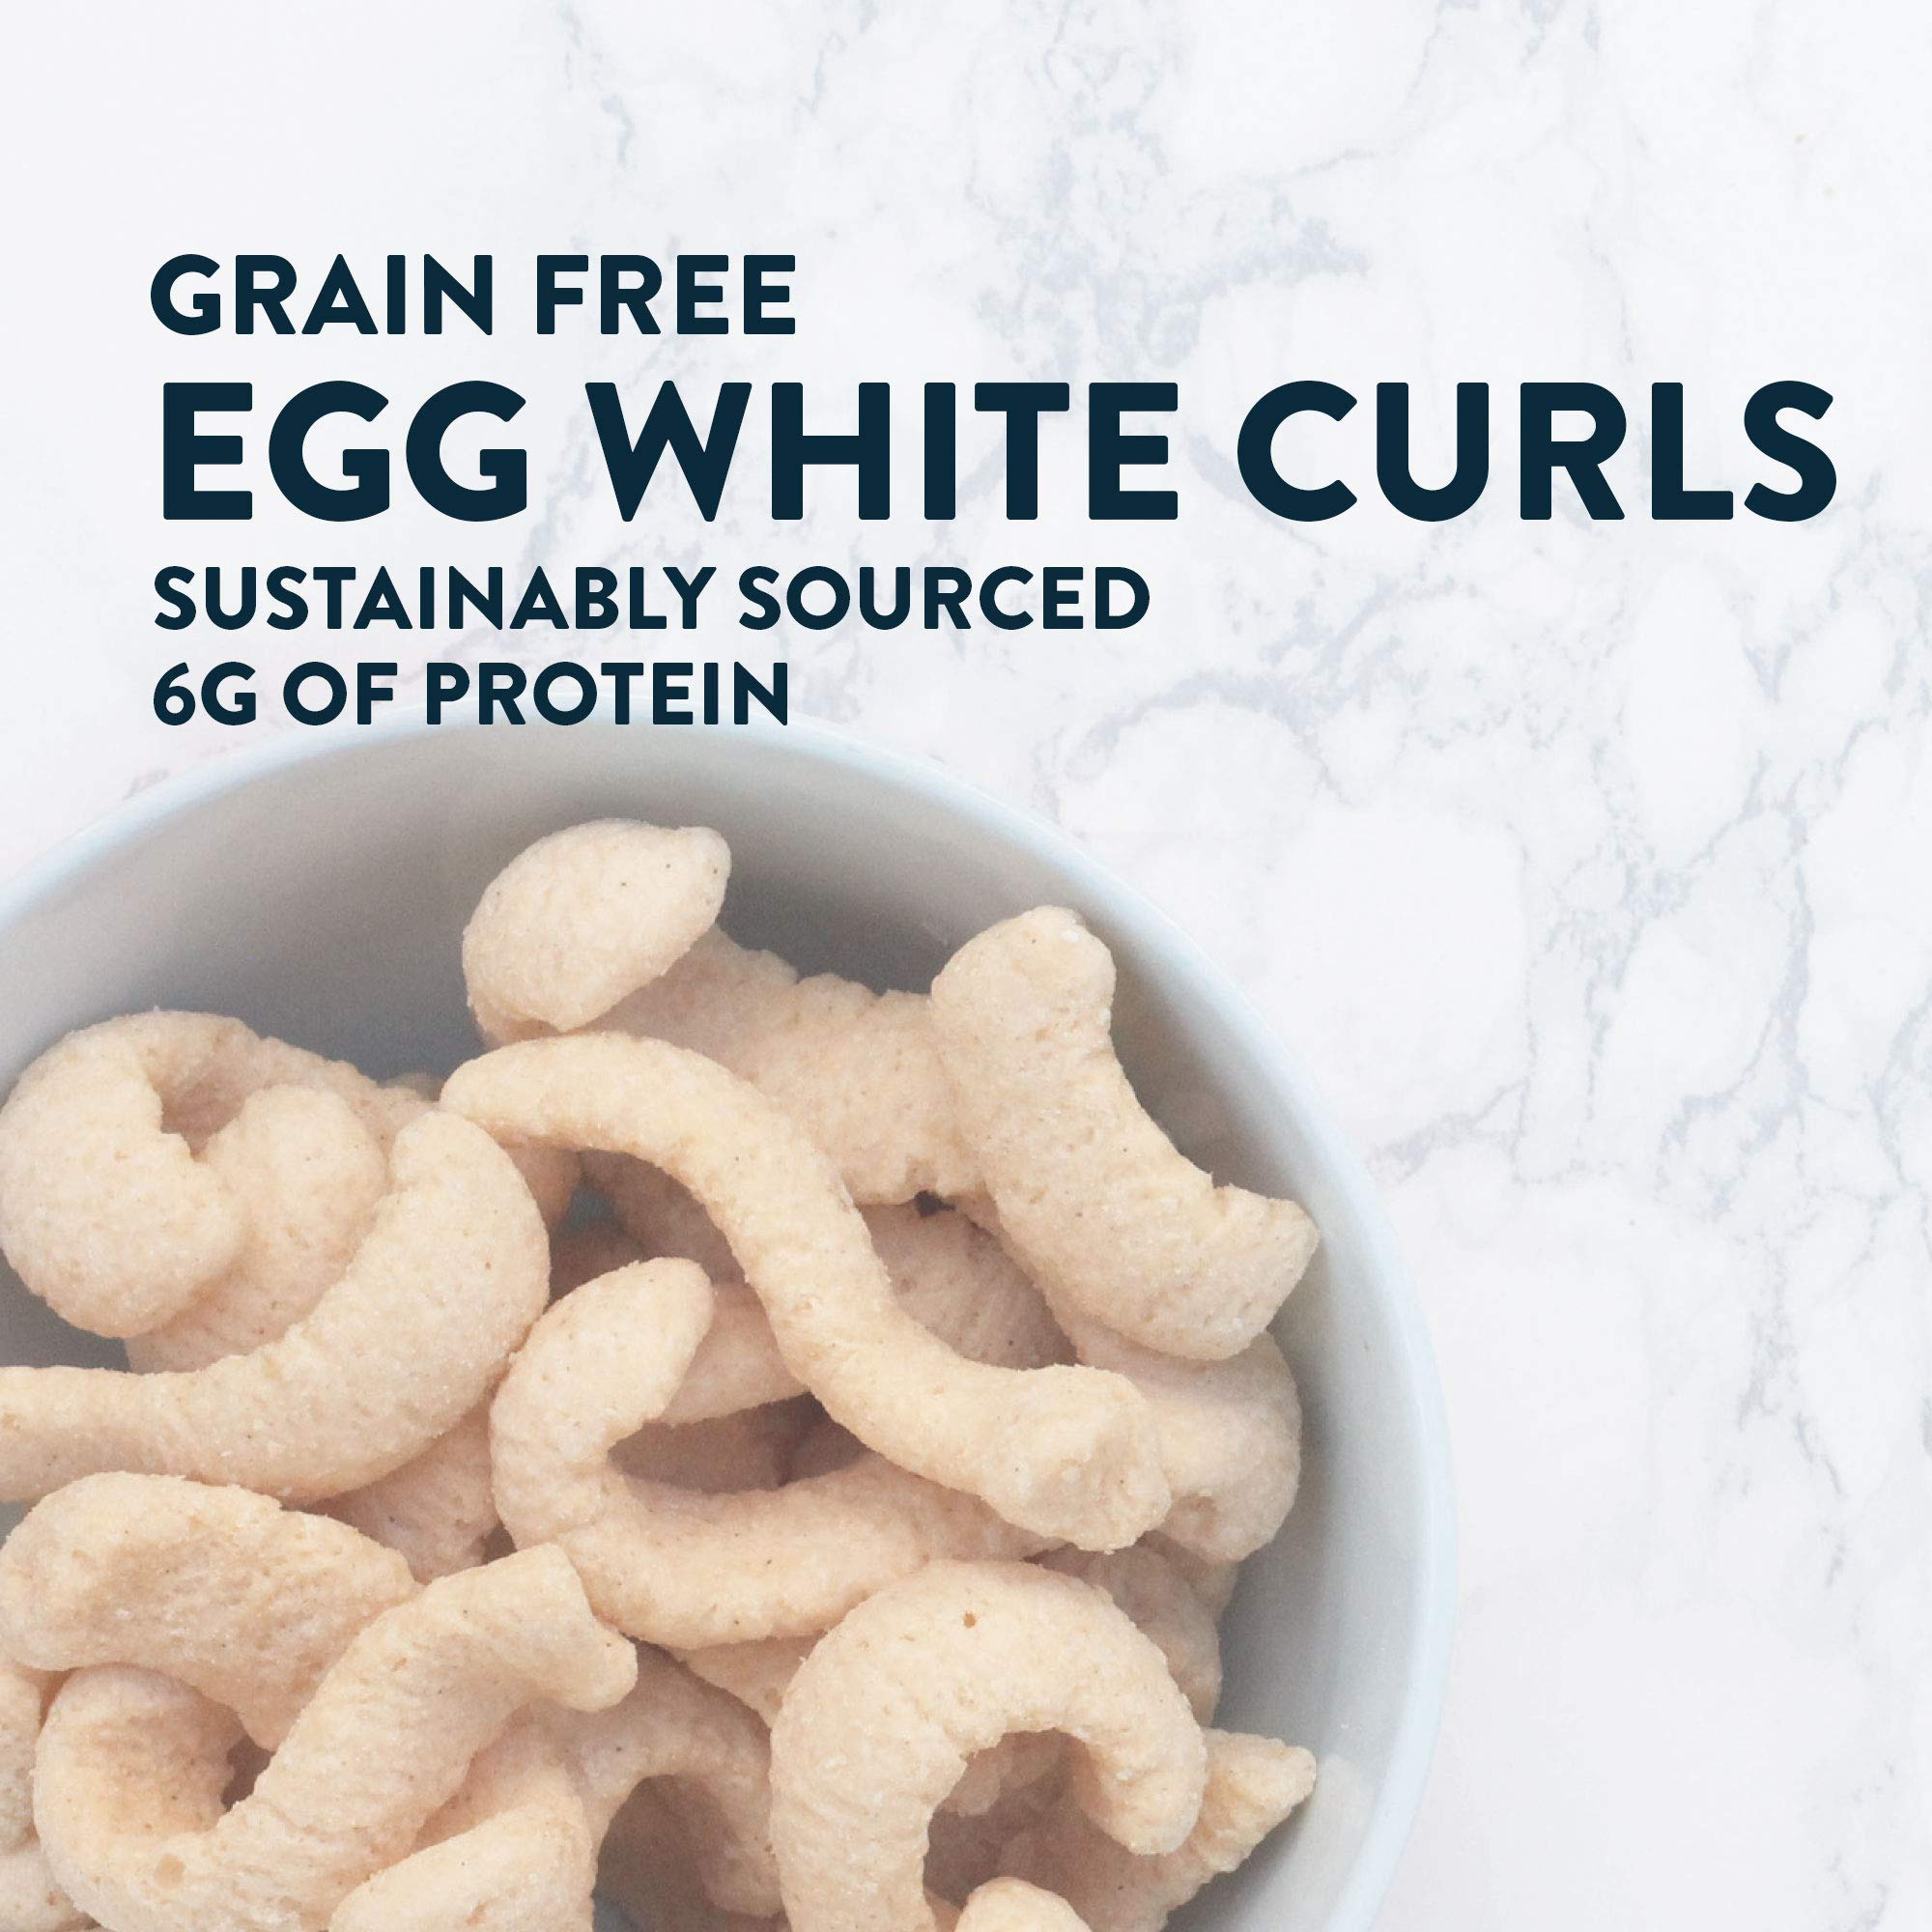 Lesserevil Himalayan Pink Salt Grain Free Egg White Curls, 6 Count by Lesserevil (Image #7)